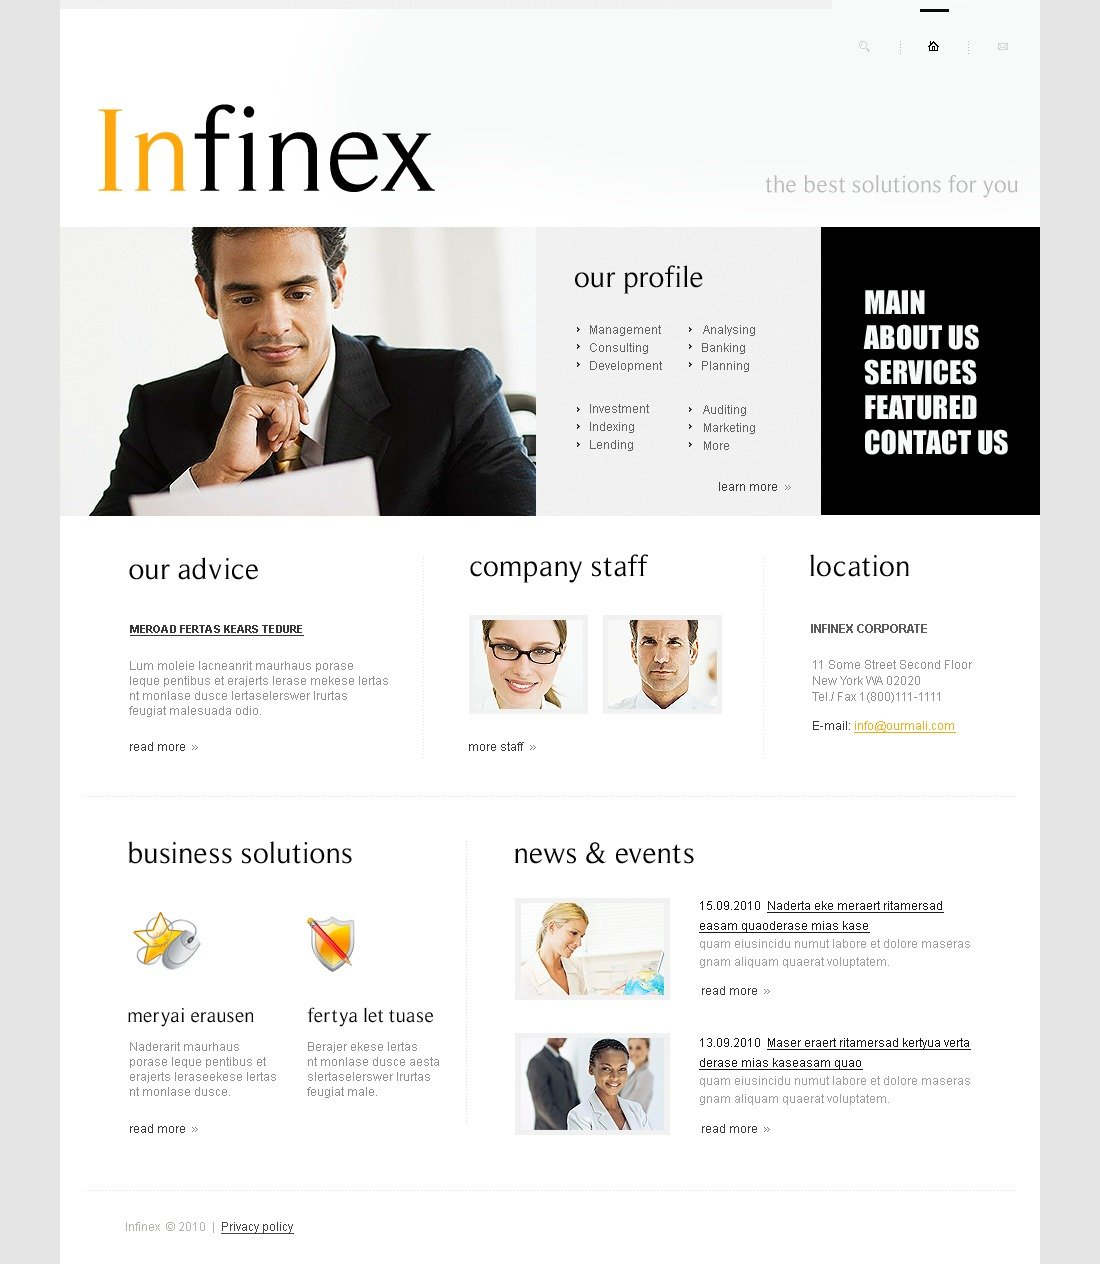 The Infinex Business Company PSD Design 54115, one of the best PSD templates of its kind (business, wide, jquery, white), also known as infinex business company PSD template, corporate solutions PSD template, innovations PSD template, contacts PSD template, service PSD template, support PSD template, information dealer PSD template, stocks PSD template, team PSD template, success PSD template, money PSD template, marketing PSD template, director PSD template, manager PSD template, analytics PSD template, planning PSD template, limited PSD template, office PSD template, sales and related with infinex business company, corporate solutions, innovations, contacts, service, support, information dealer, stocks, team, success, money, marketing, director, manager, analytics, planning, limited, office, sales, etc.